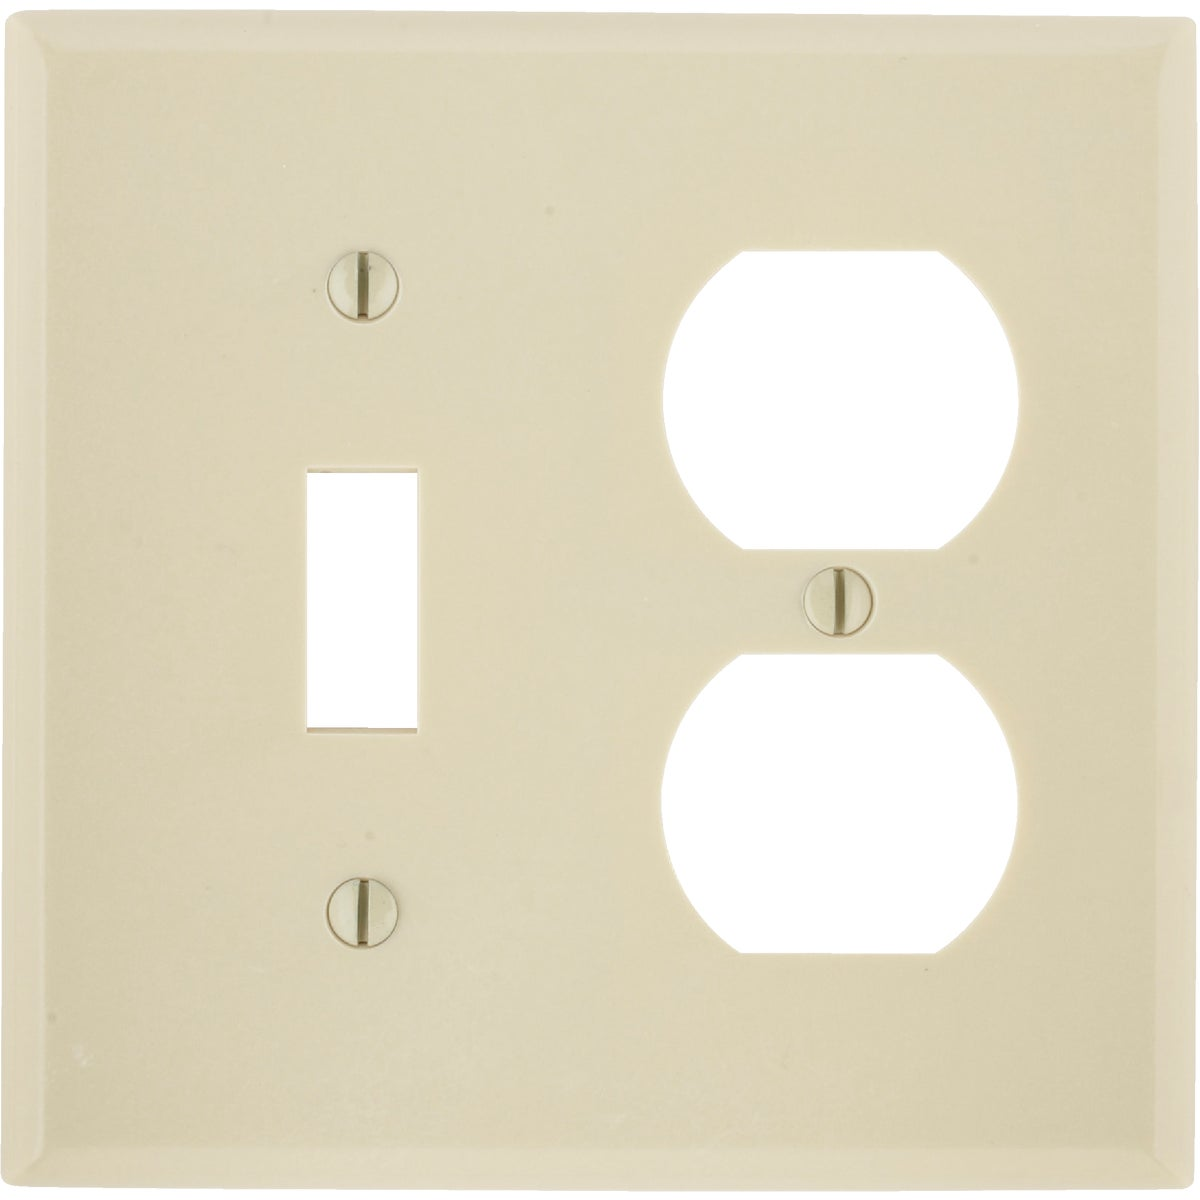 IV COMBO WALL PLATE - 86105 by Leviton Mfg Co